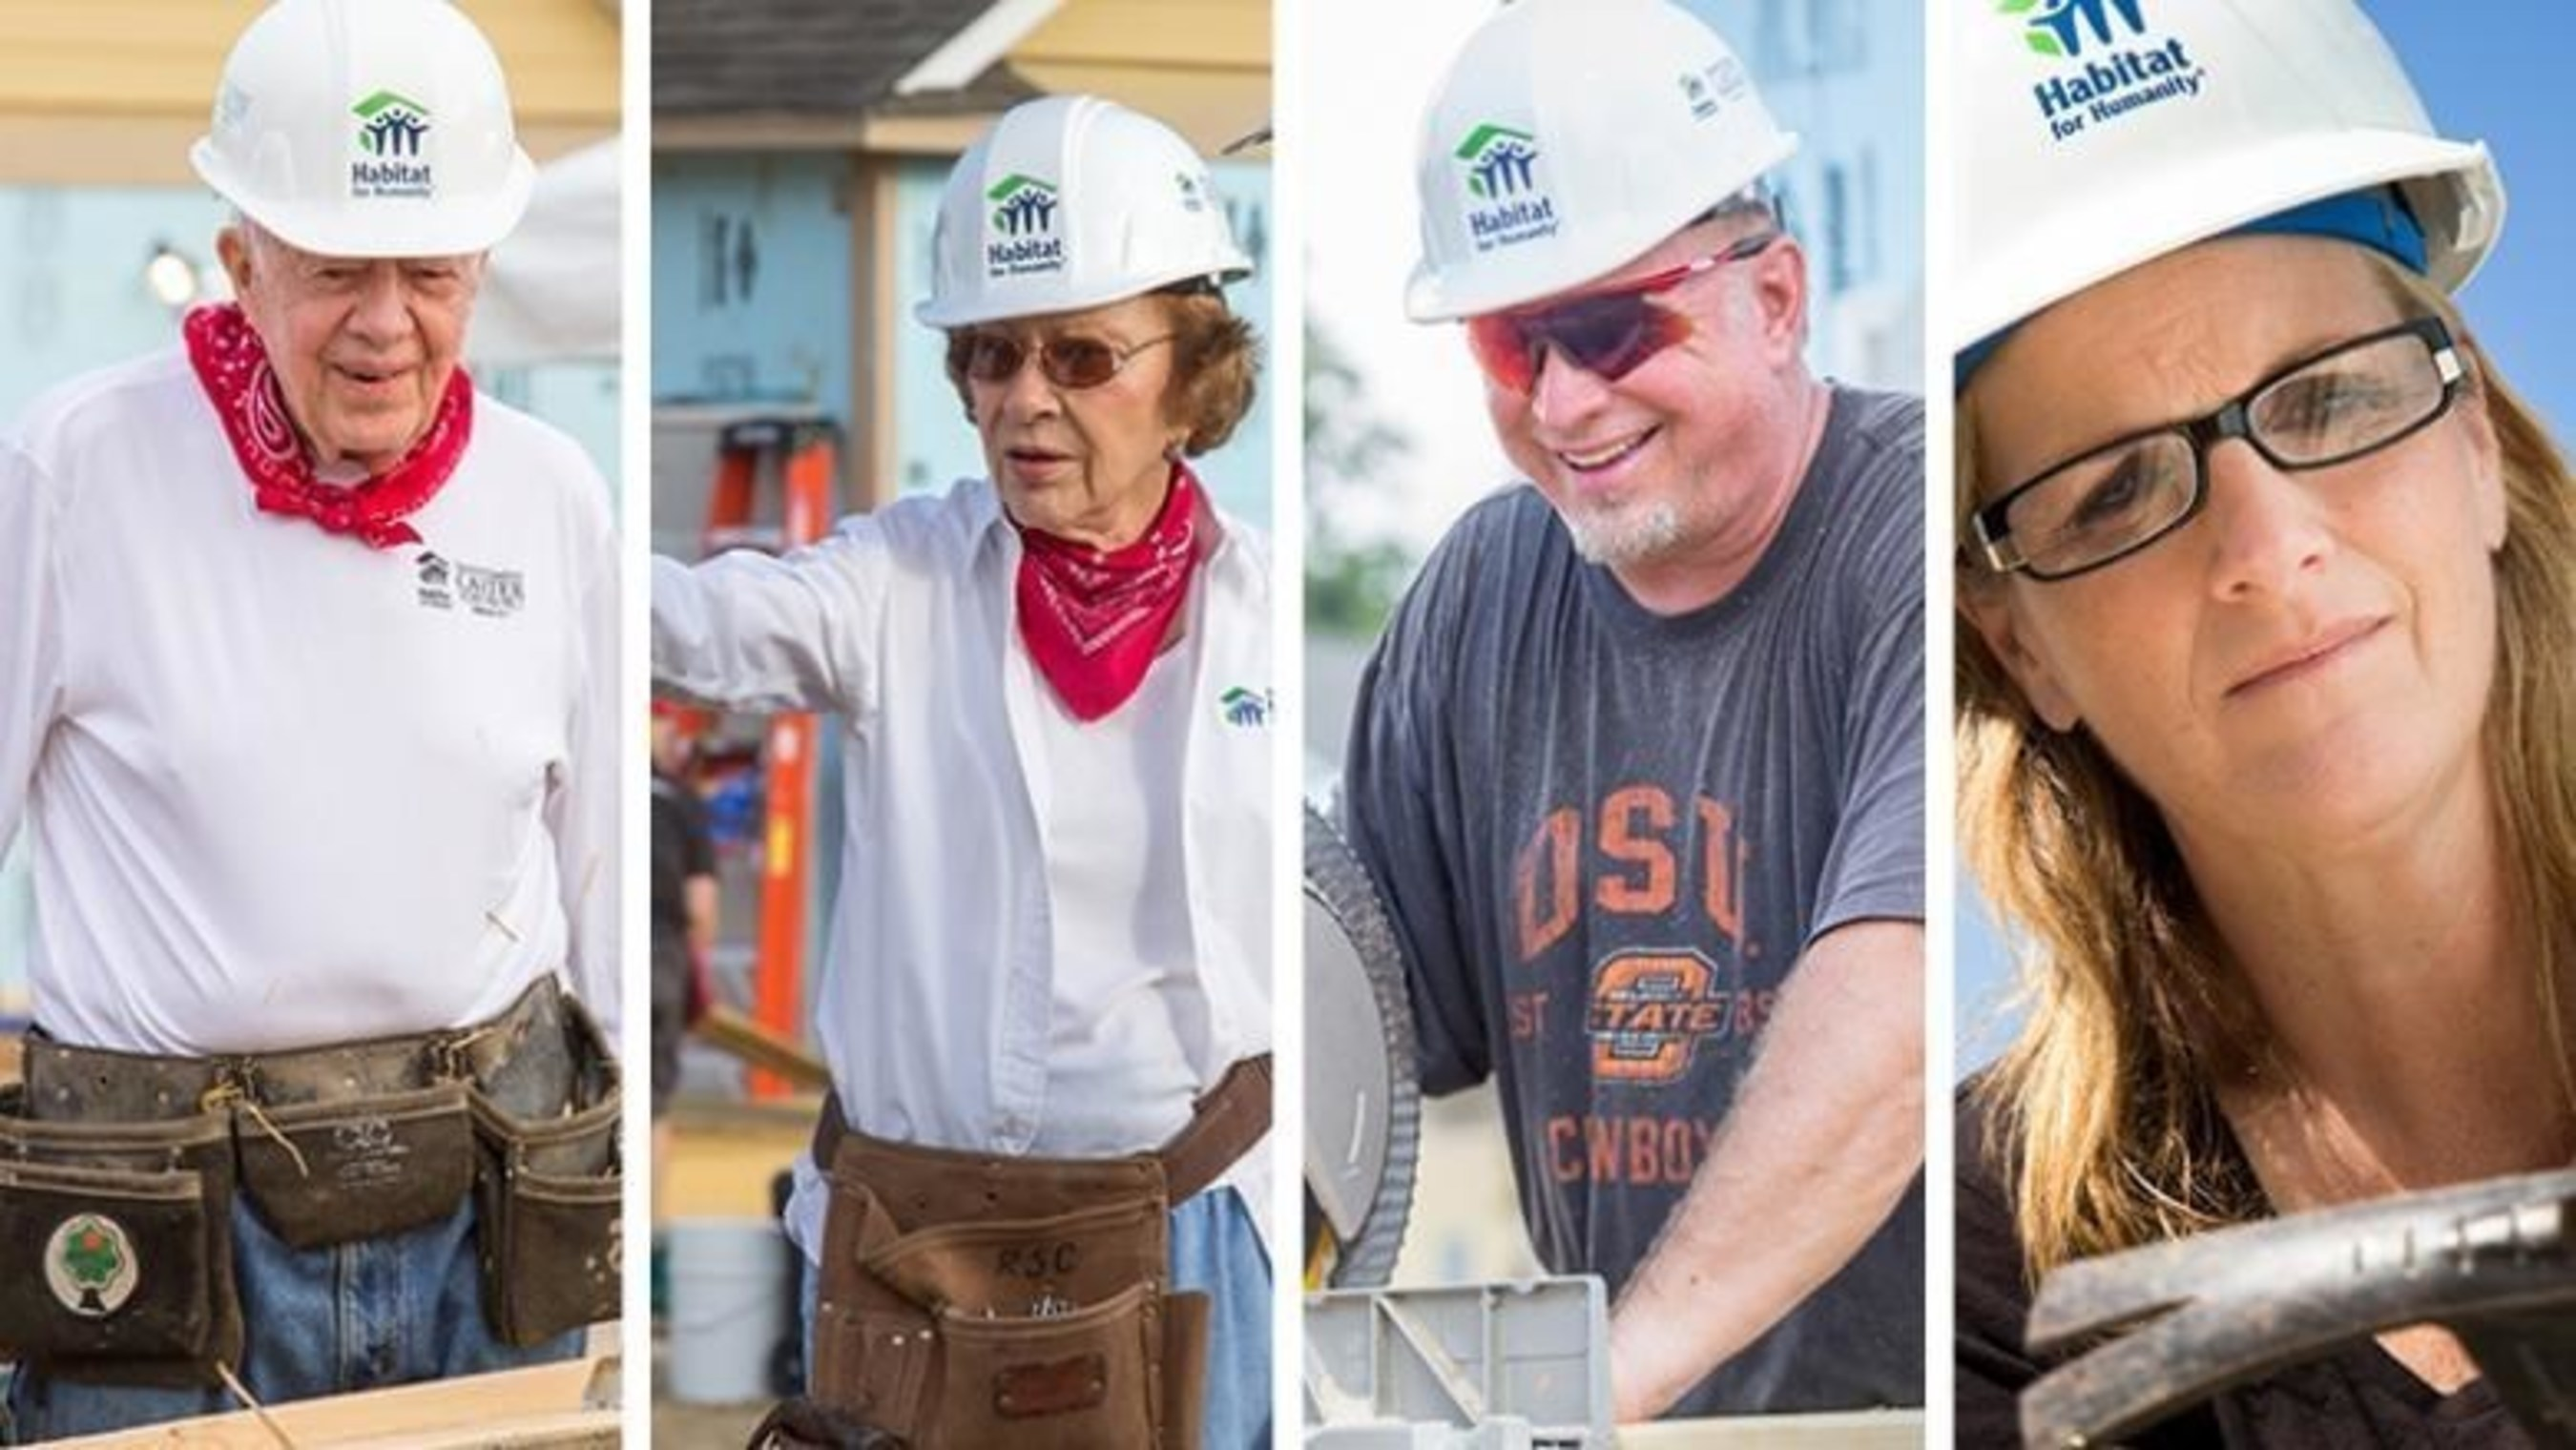 The inaugural Habitat Humanitarians are former President Jimmy Carter, former first lady Rosalynn Carter and country music stars Garth Brooks and Trisha Yearwood.